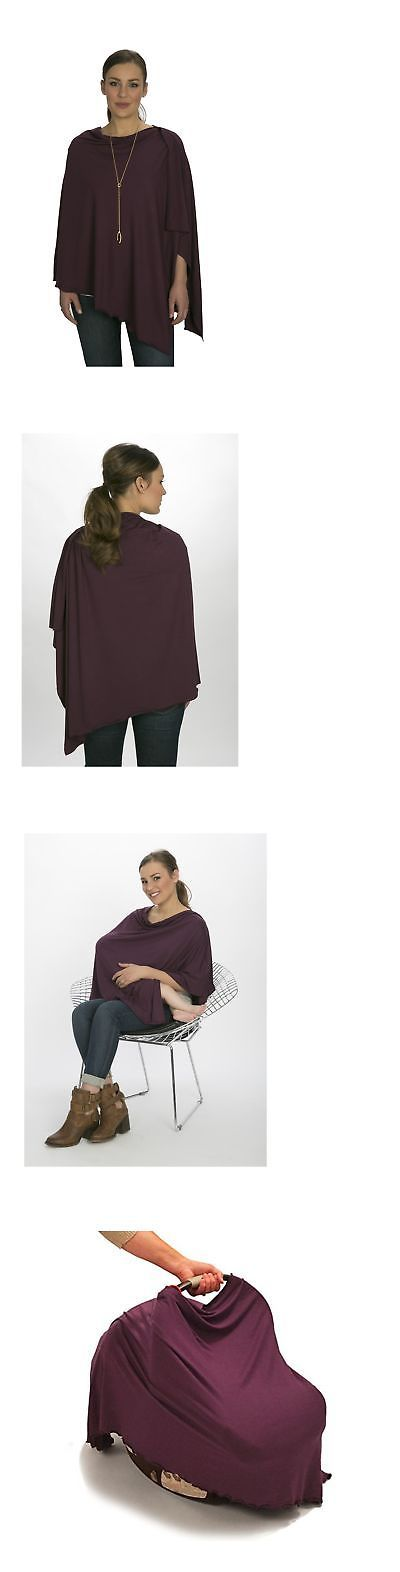 Nursing Covers Blankets 184340: Bamboobies Nursing Cover Shawl Scarf Maternity Poncho Top For Breastfeeding A... -> BUY IT NOW ONLY: $33.77 on eBay!